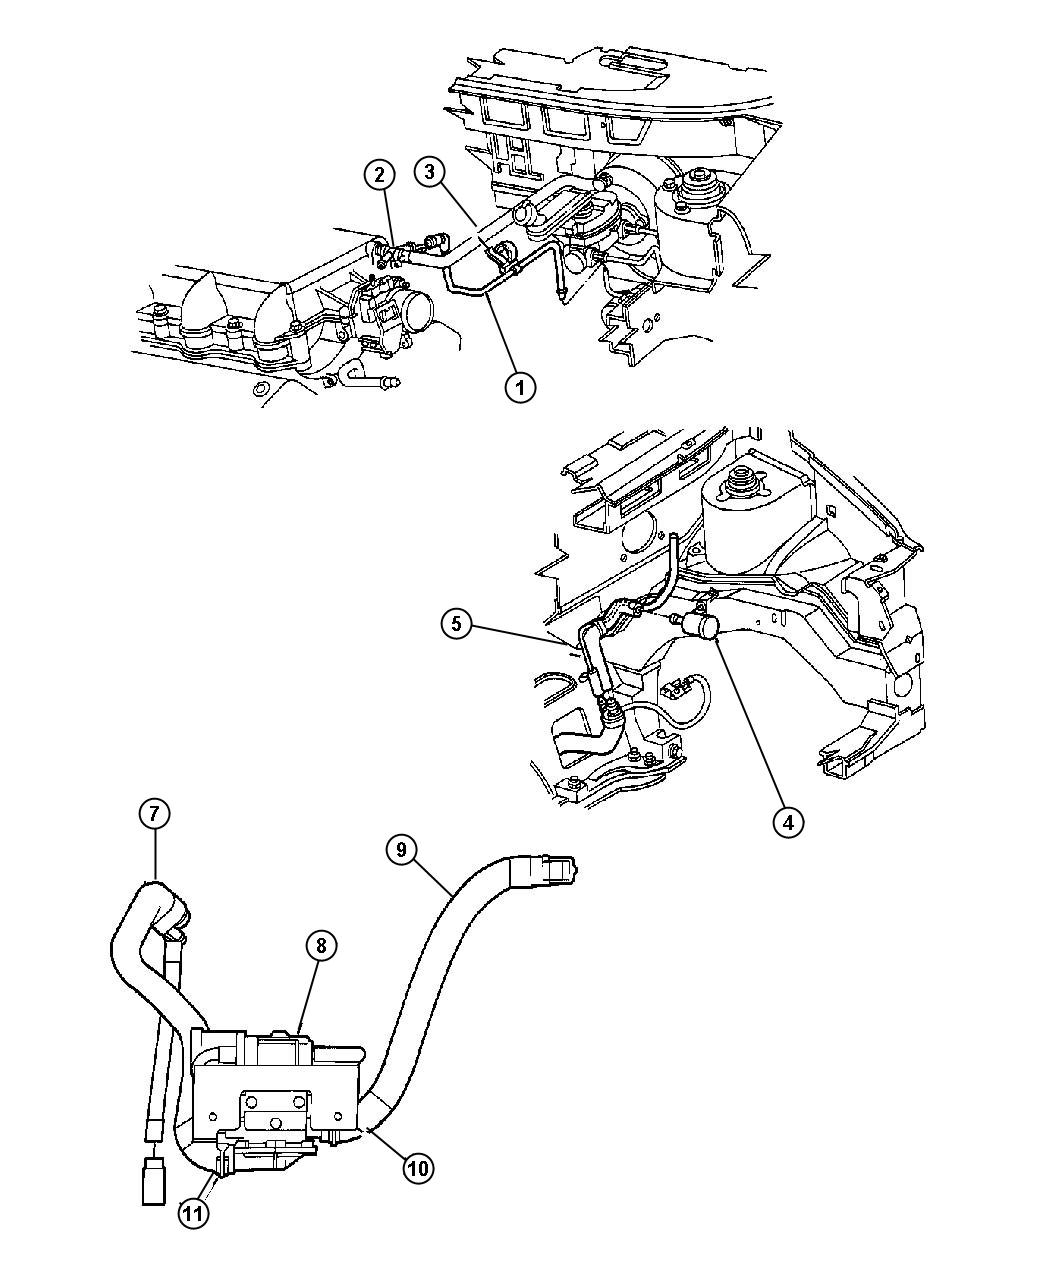 Service manual [Electric Power Steering 1997 Plymouth